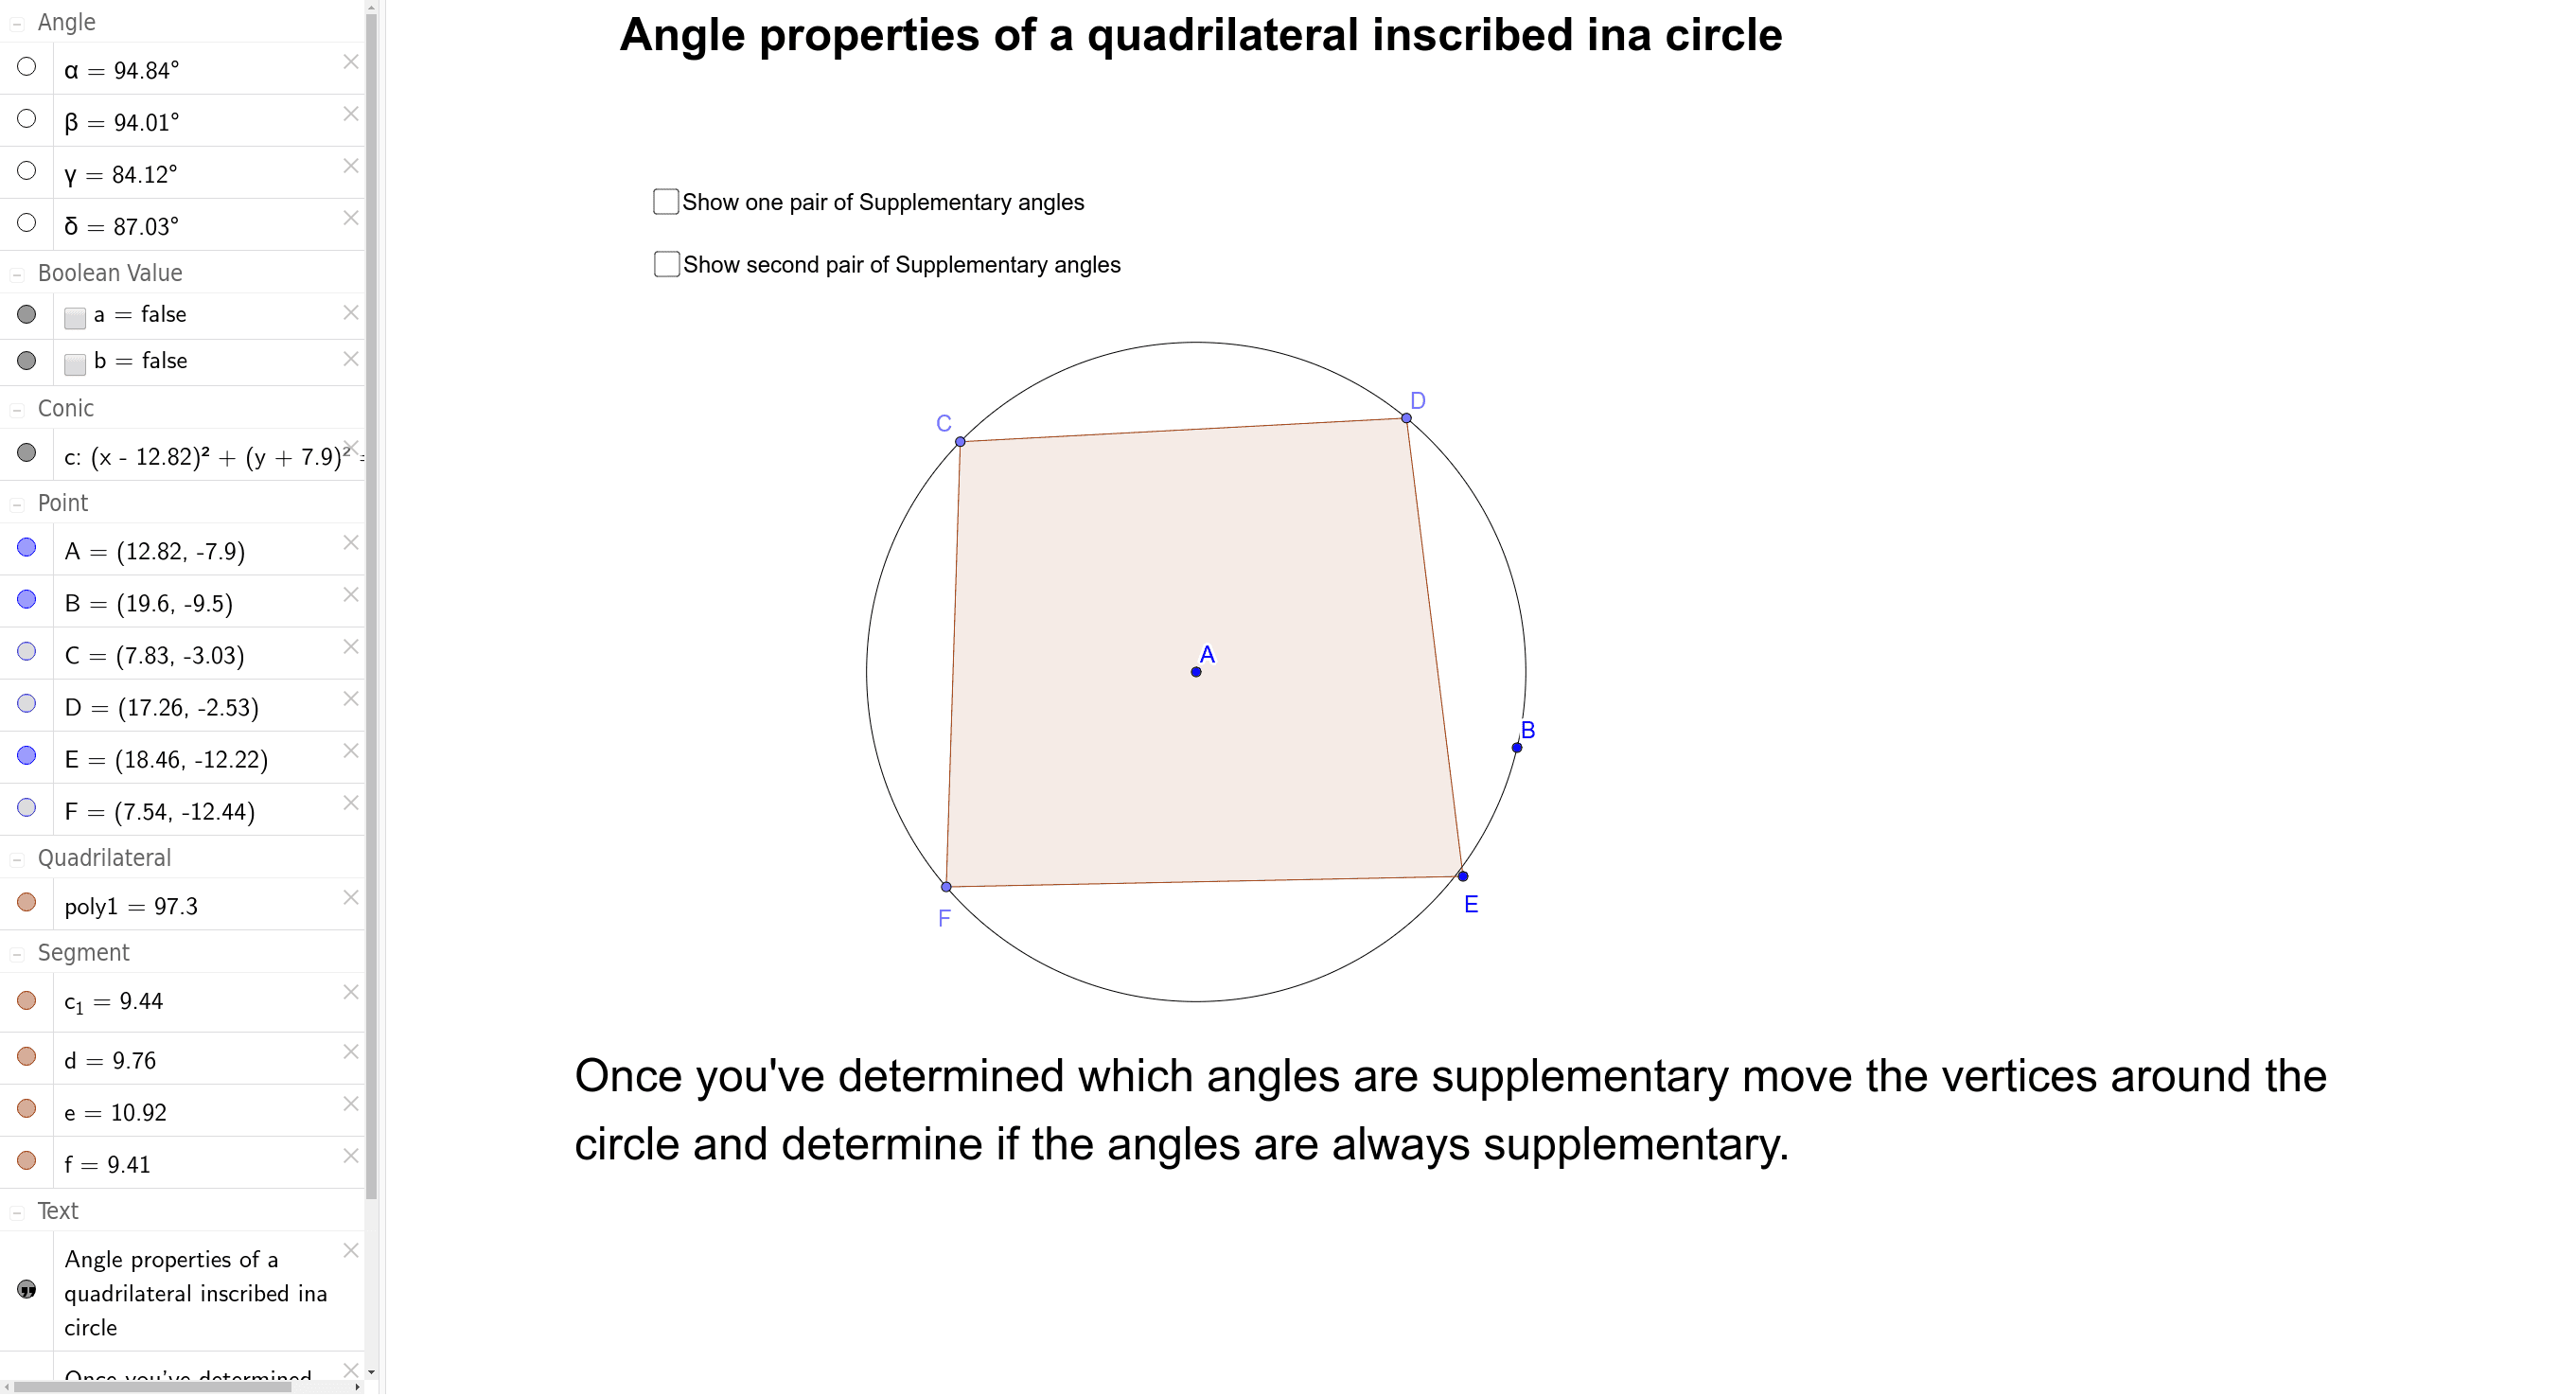 Angle properties of a quadrilateral inscribed in a circle